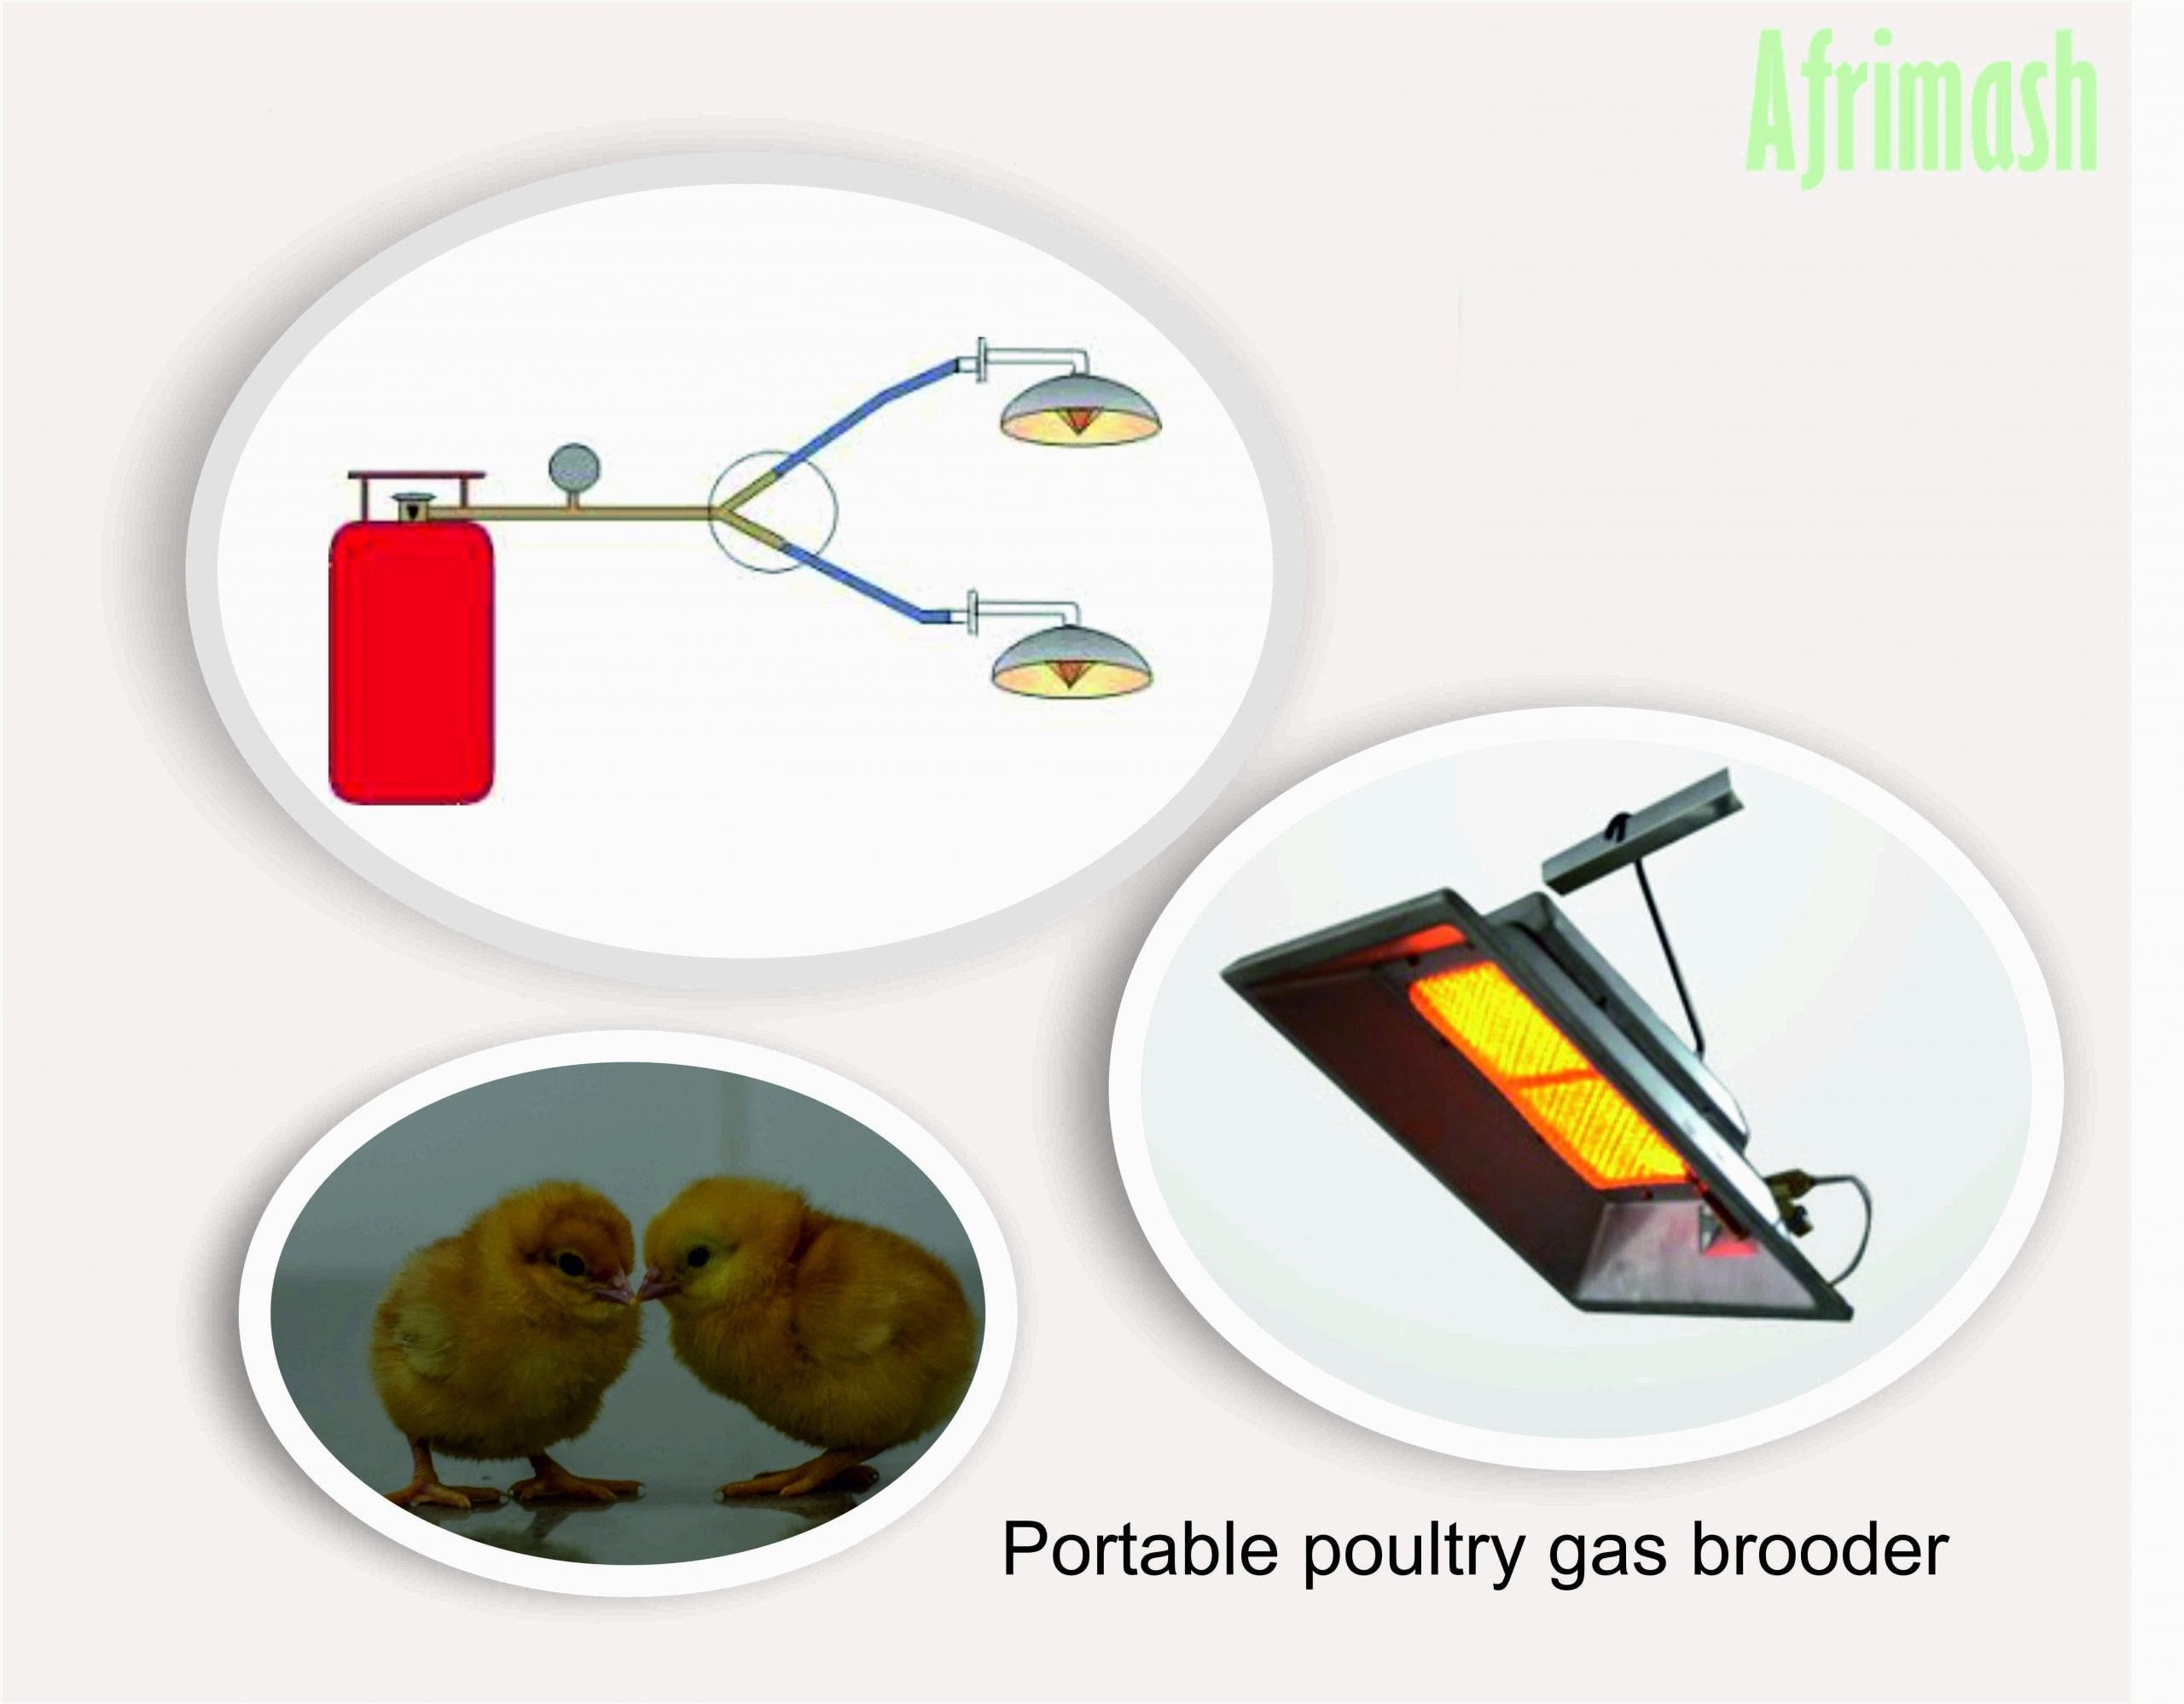 portable poultry brooder scaled